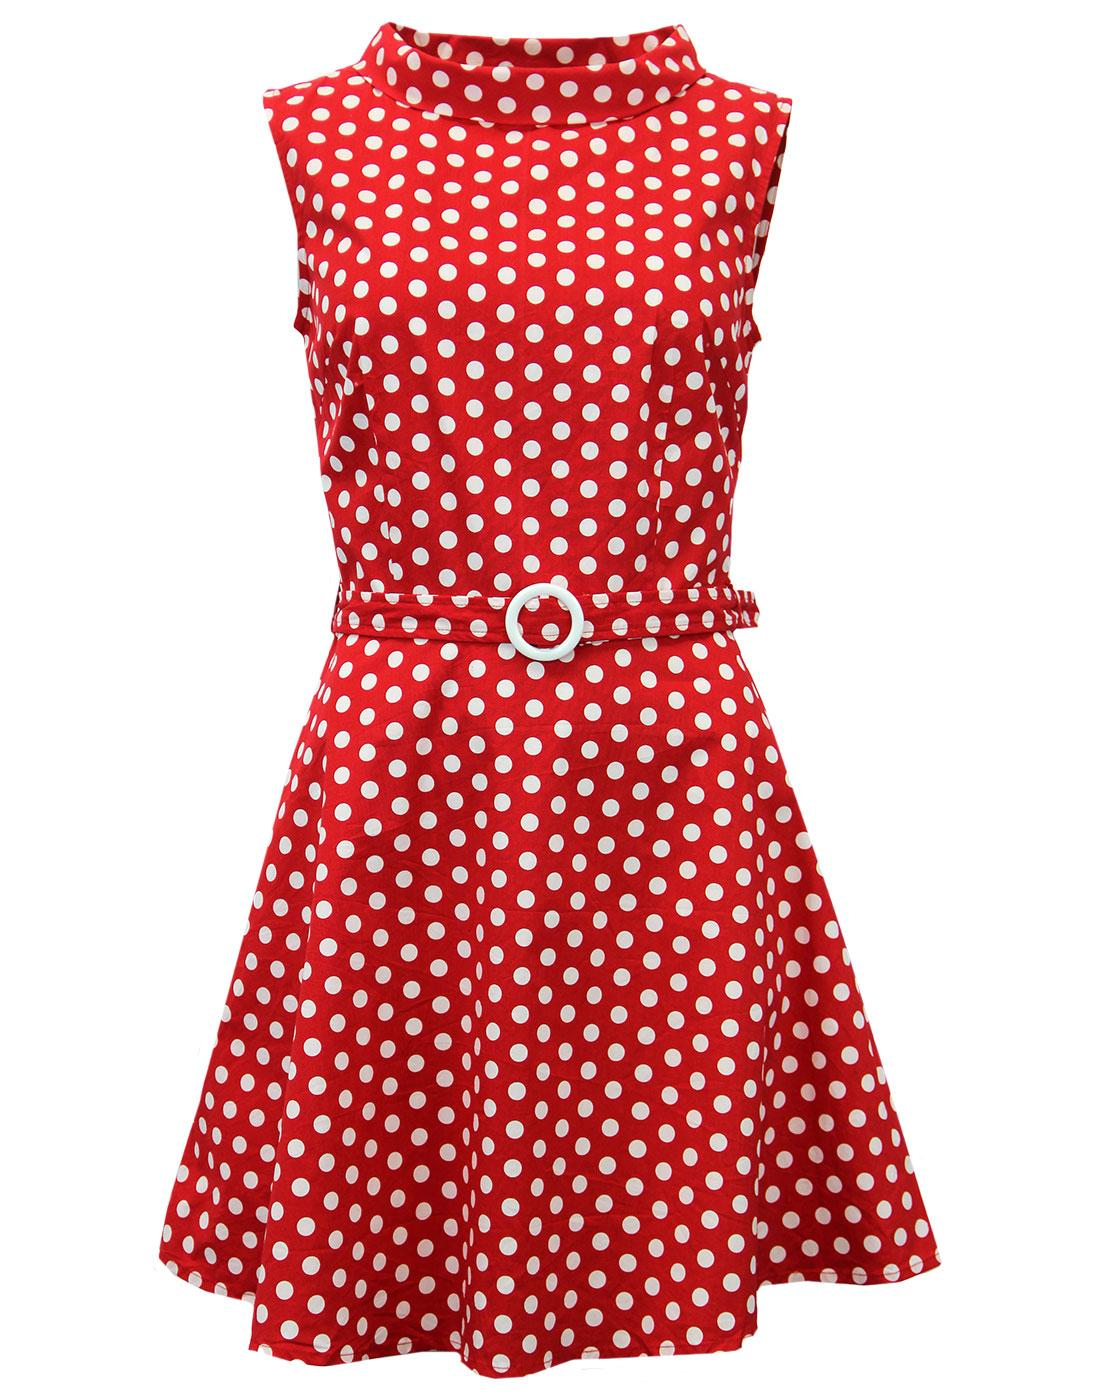 Minnie MADCAP ENGLAND 60s Mod Polkadot Mini Dress